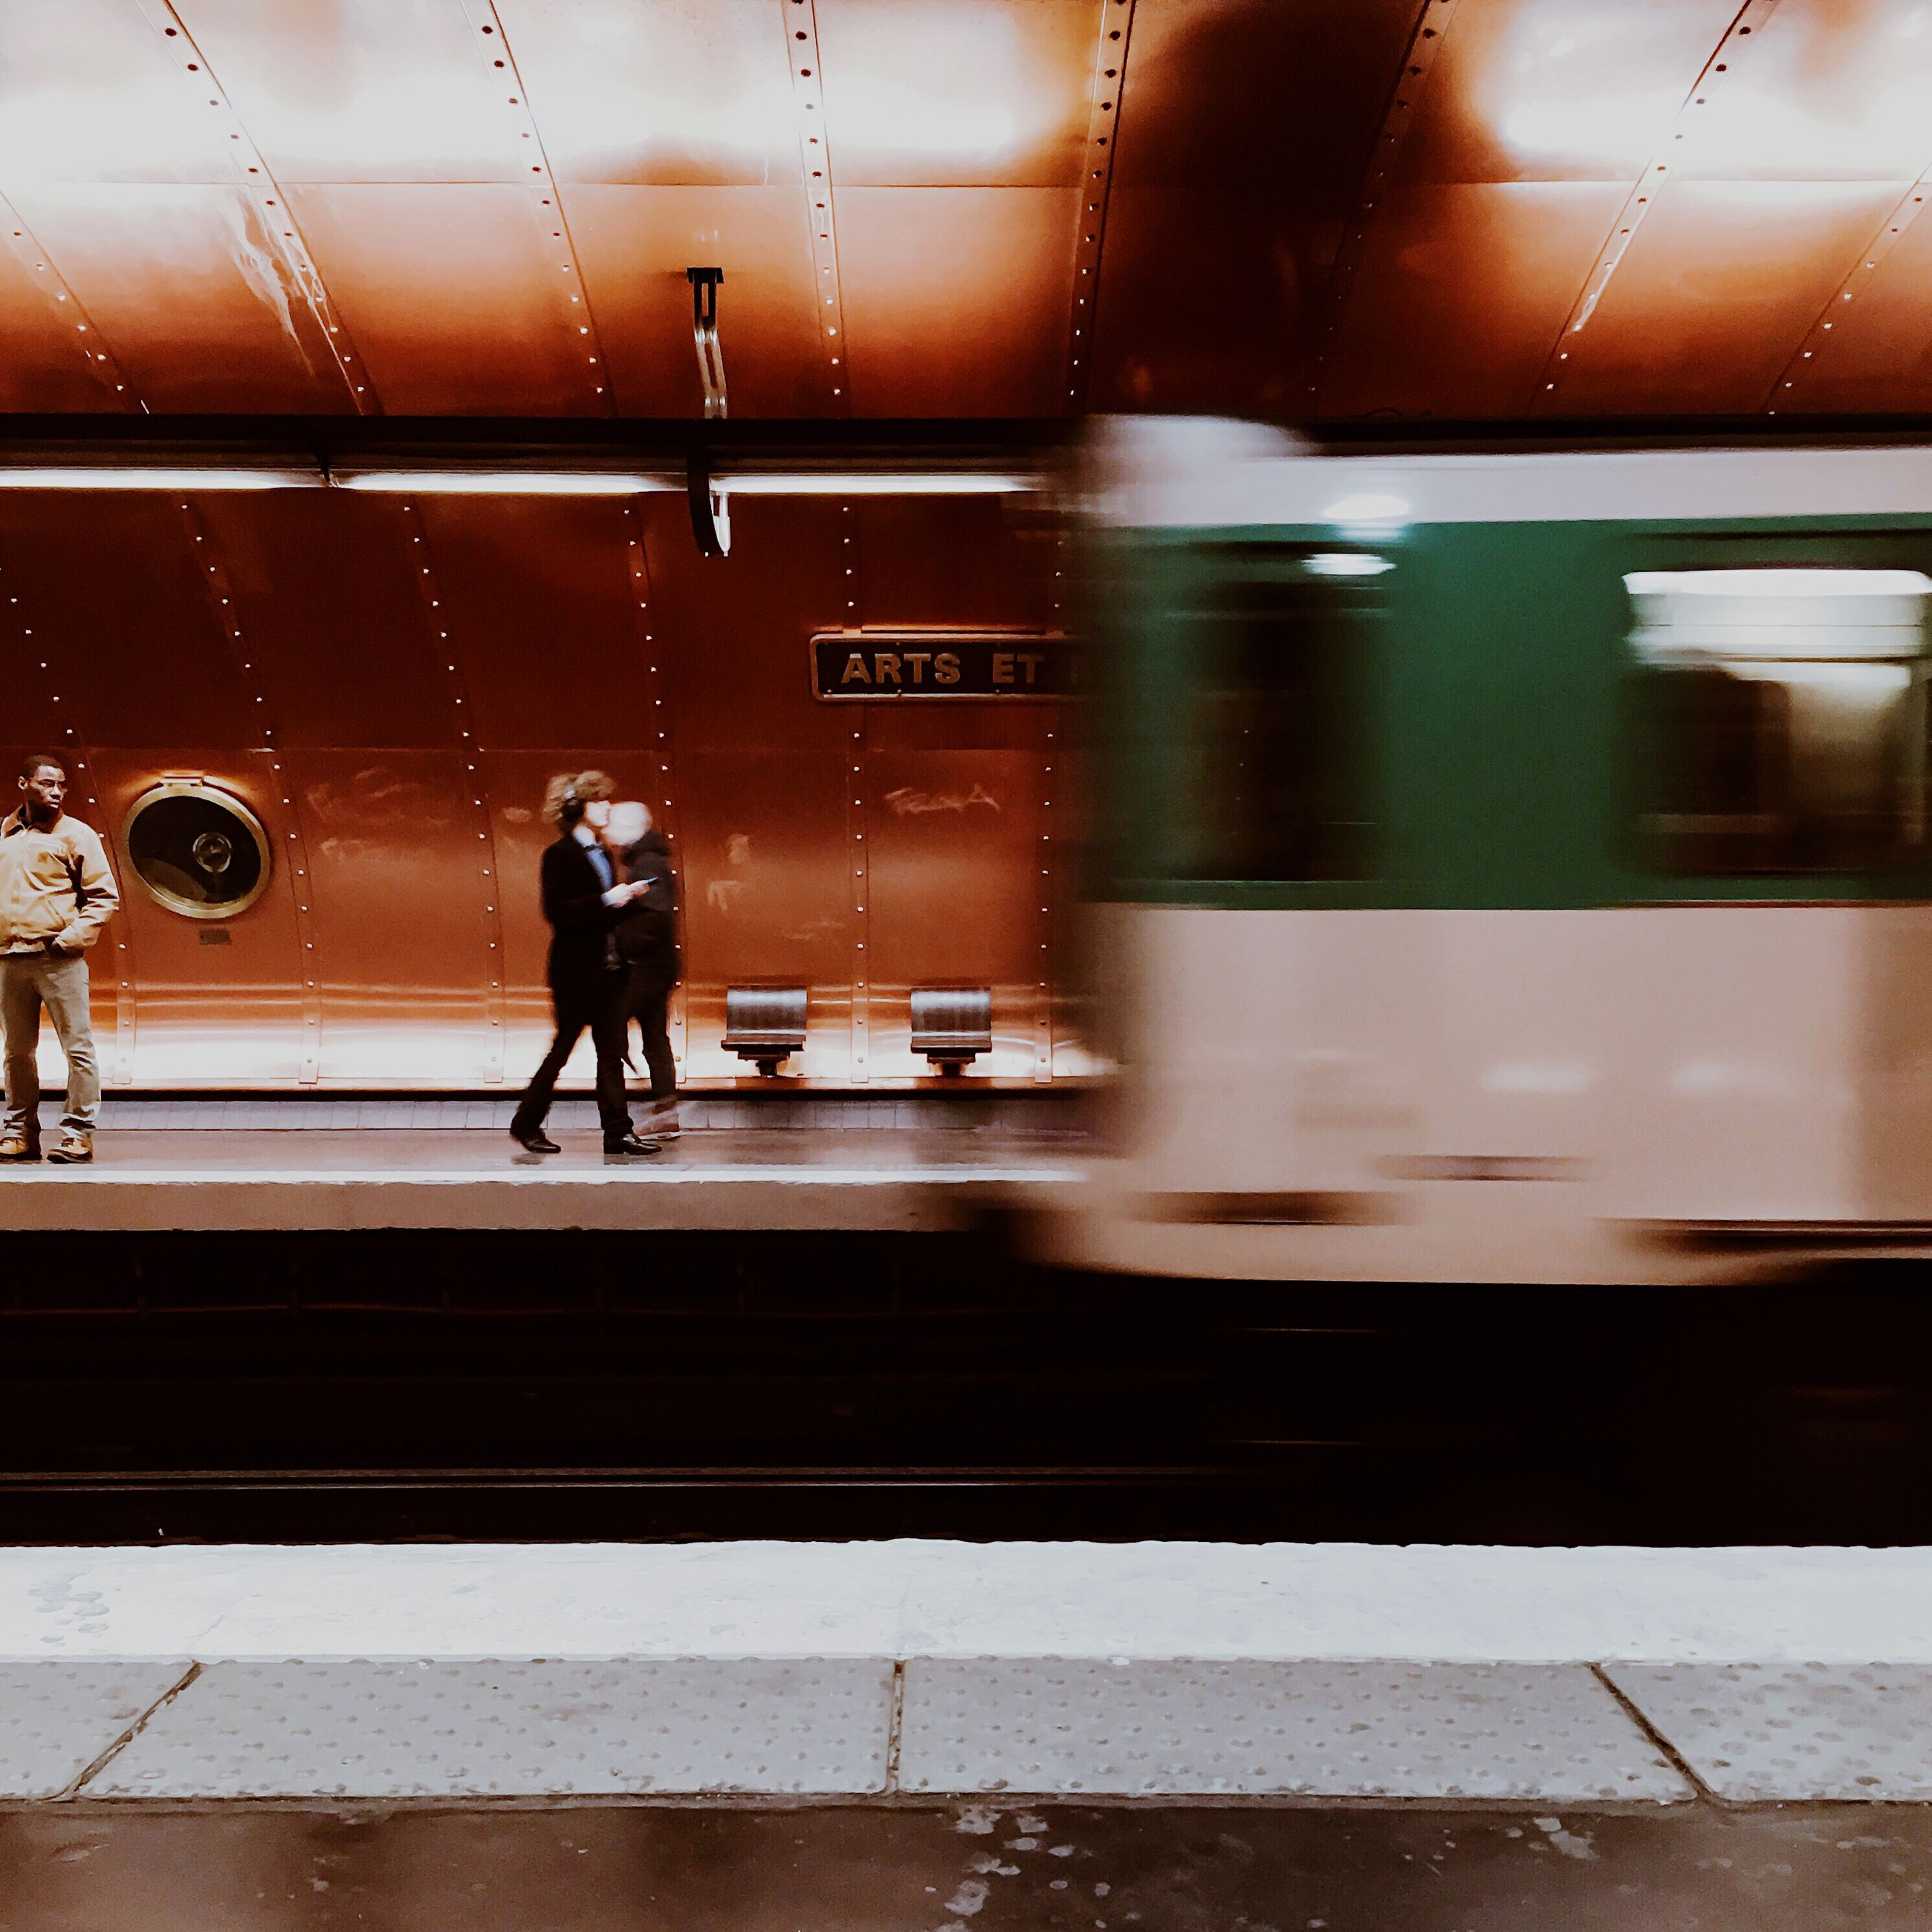 public transportation, transportation, rail transportation, railroad station, railroad station platform, motion, blurred motion, train - vehicle, mode of transport, on the move, speed, men, travel, passenger, illuminated, passenger train, railroad track, walking, train, subway station, waiting, city life, commuter, railway station, casual clothing, journey, person, railway station platform